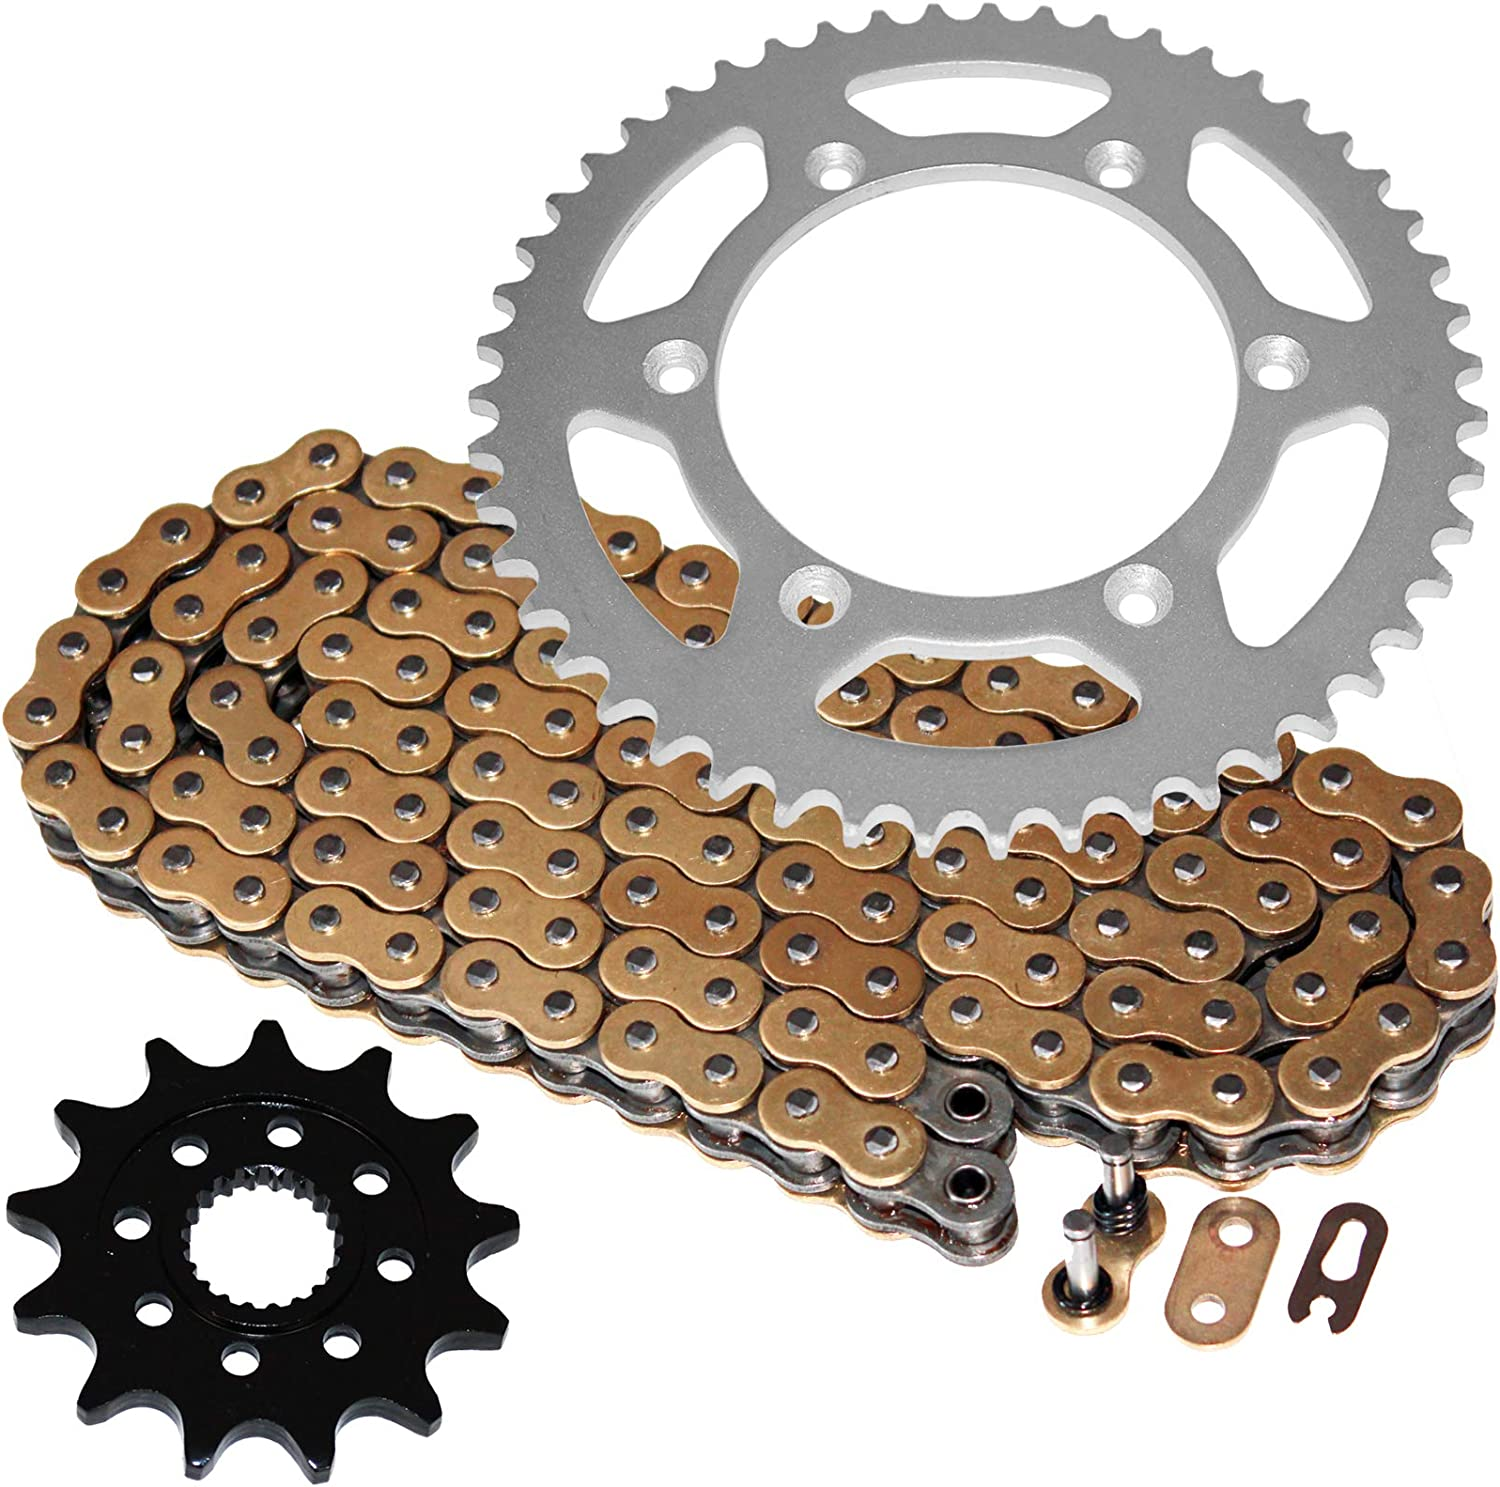 Caltric compatible with Gold favorite Max 88% OFF O-Ring Drive and Chain Sprockets Ki